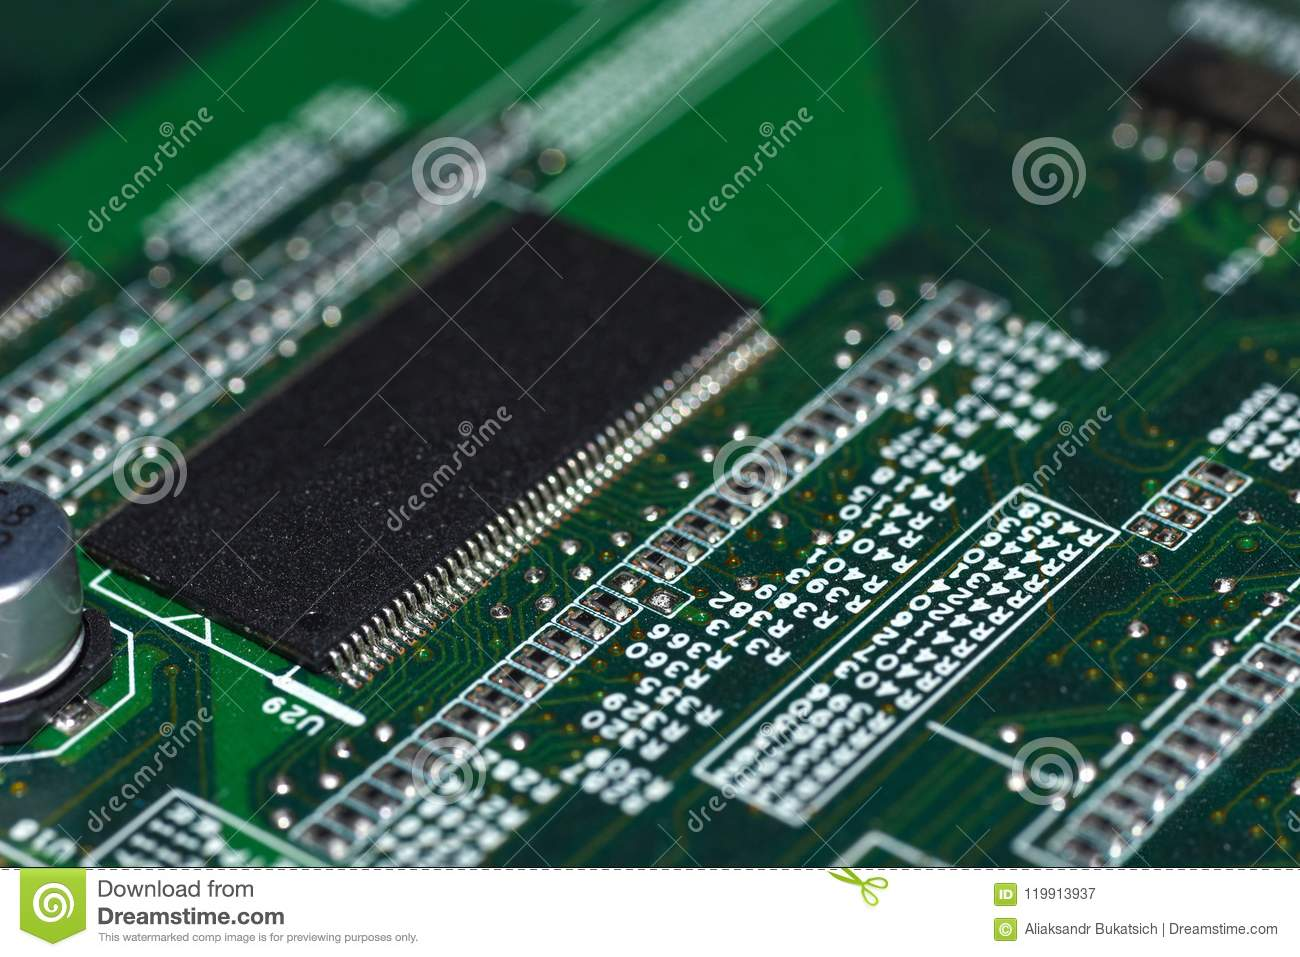 microchips, radioelements, processor on the electronic boardmotherboard is the main printed circuit board found in general purpose microcomputers and other expandable systems